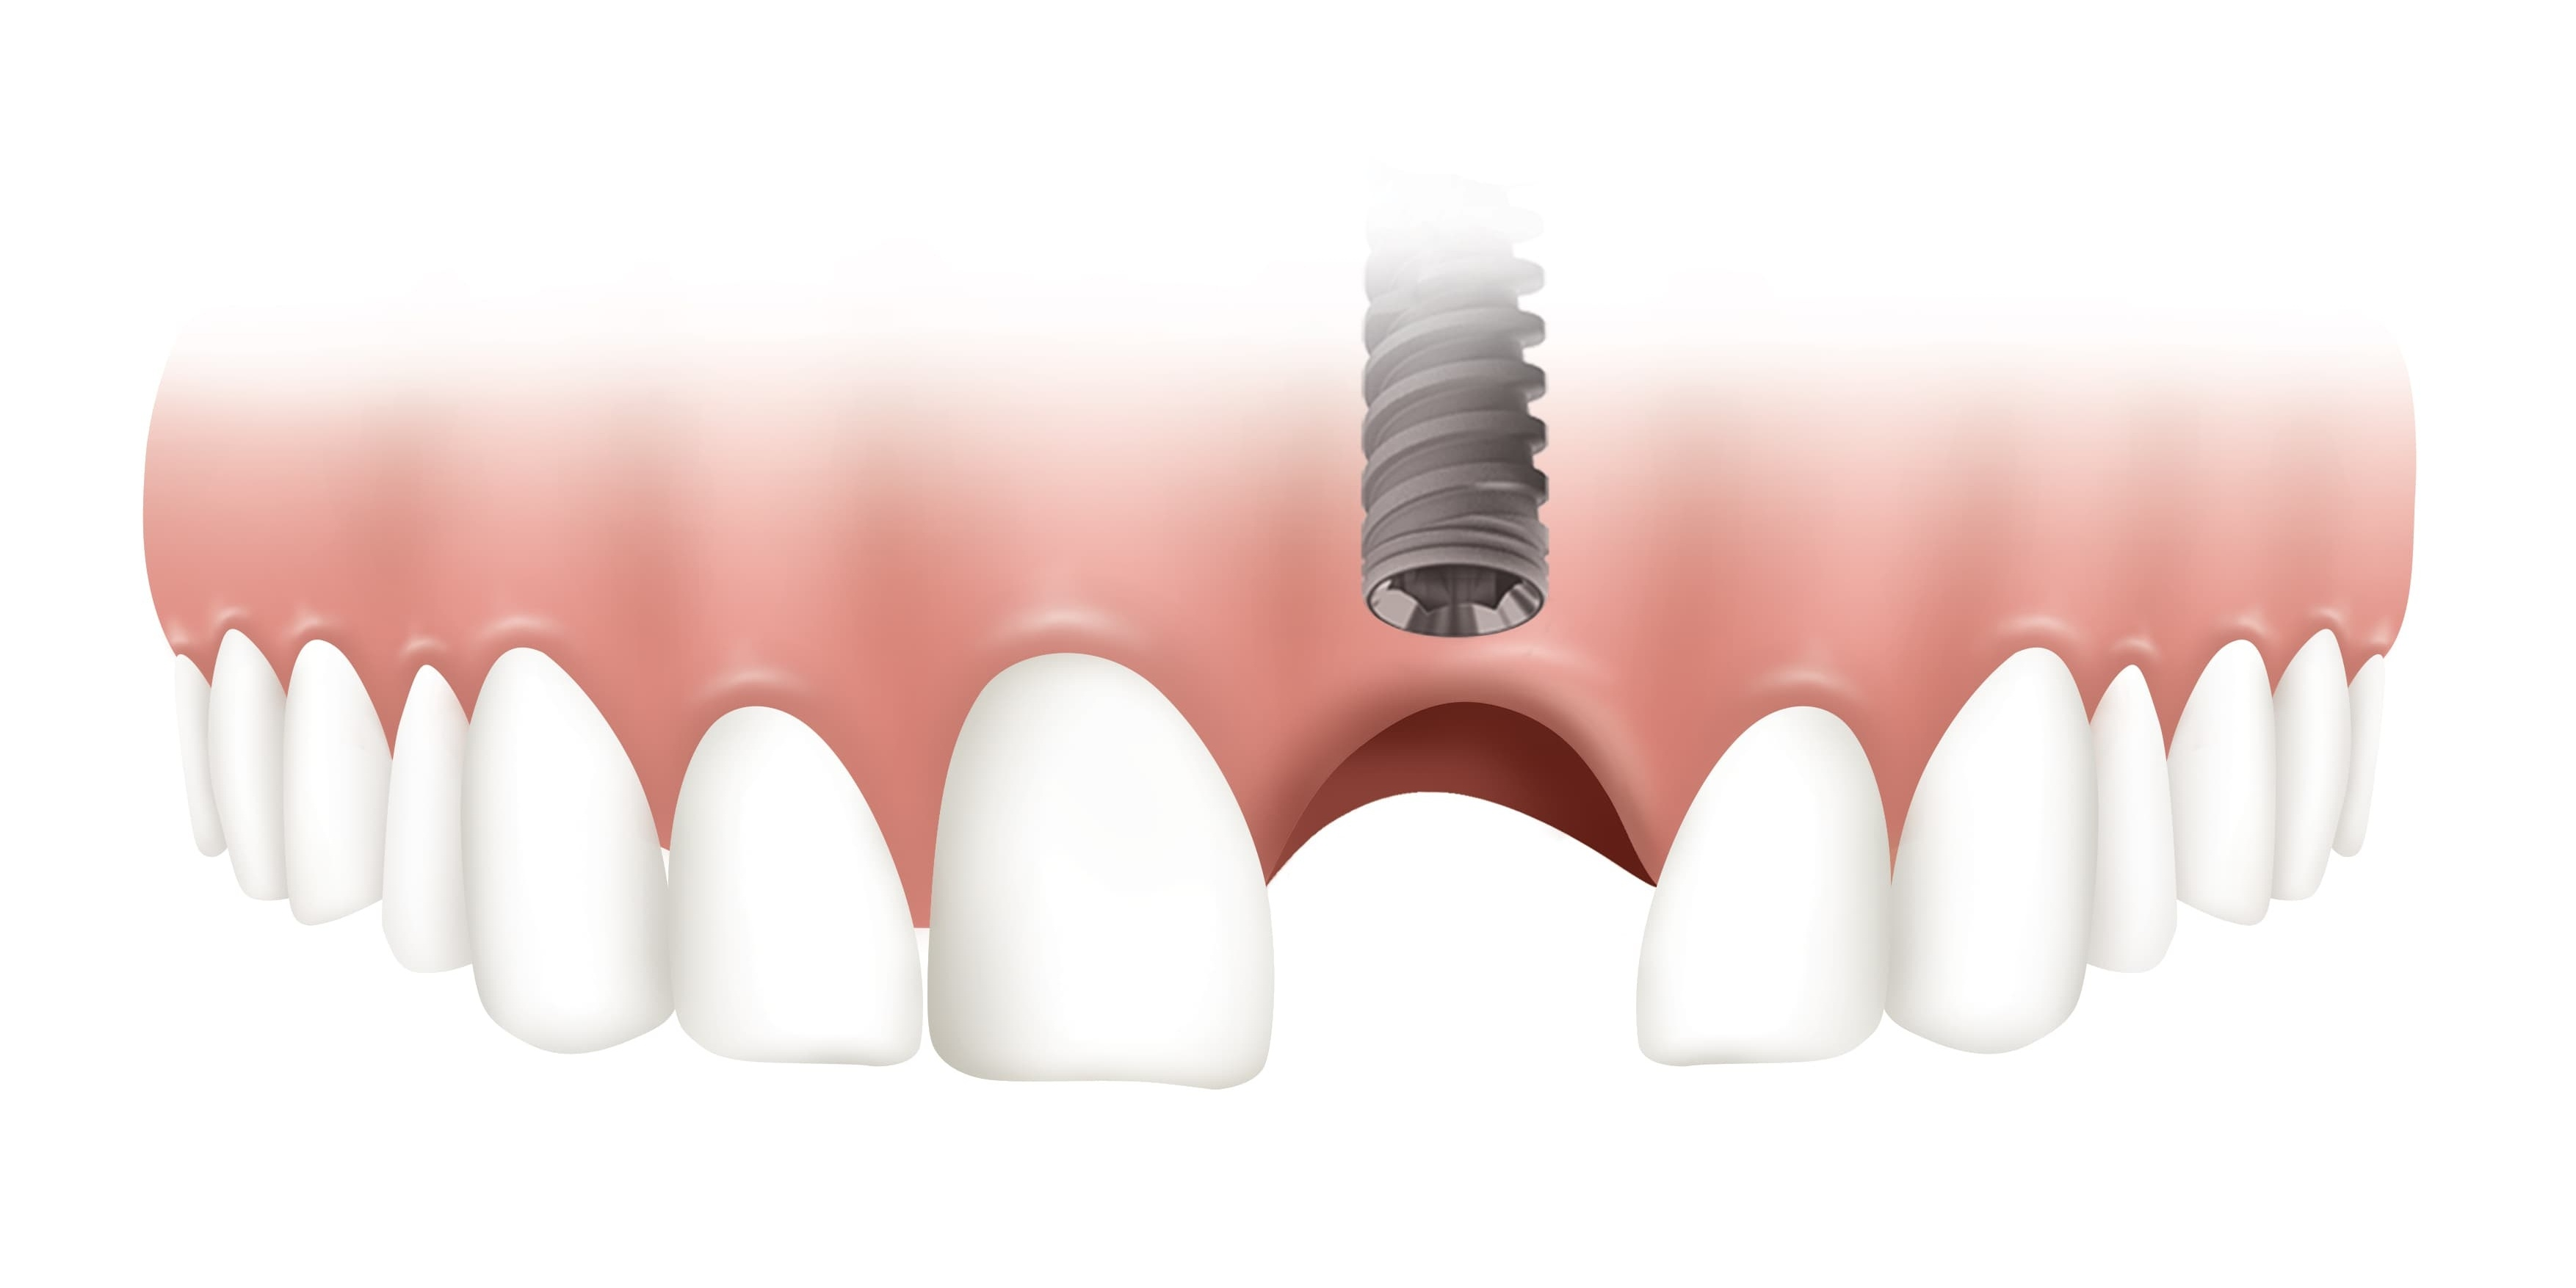 Soft Tissue Management Around Dental Implants and Its Functional Outcomes at Our 2018 Costa Rica Symposium